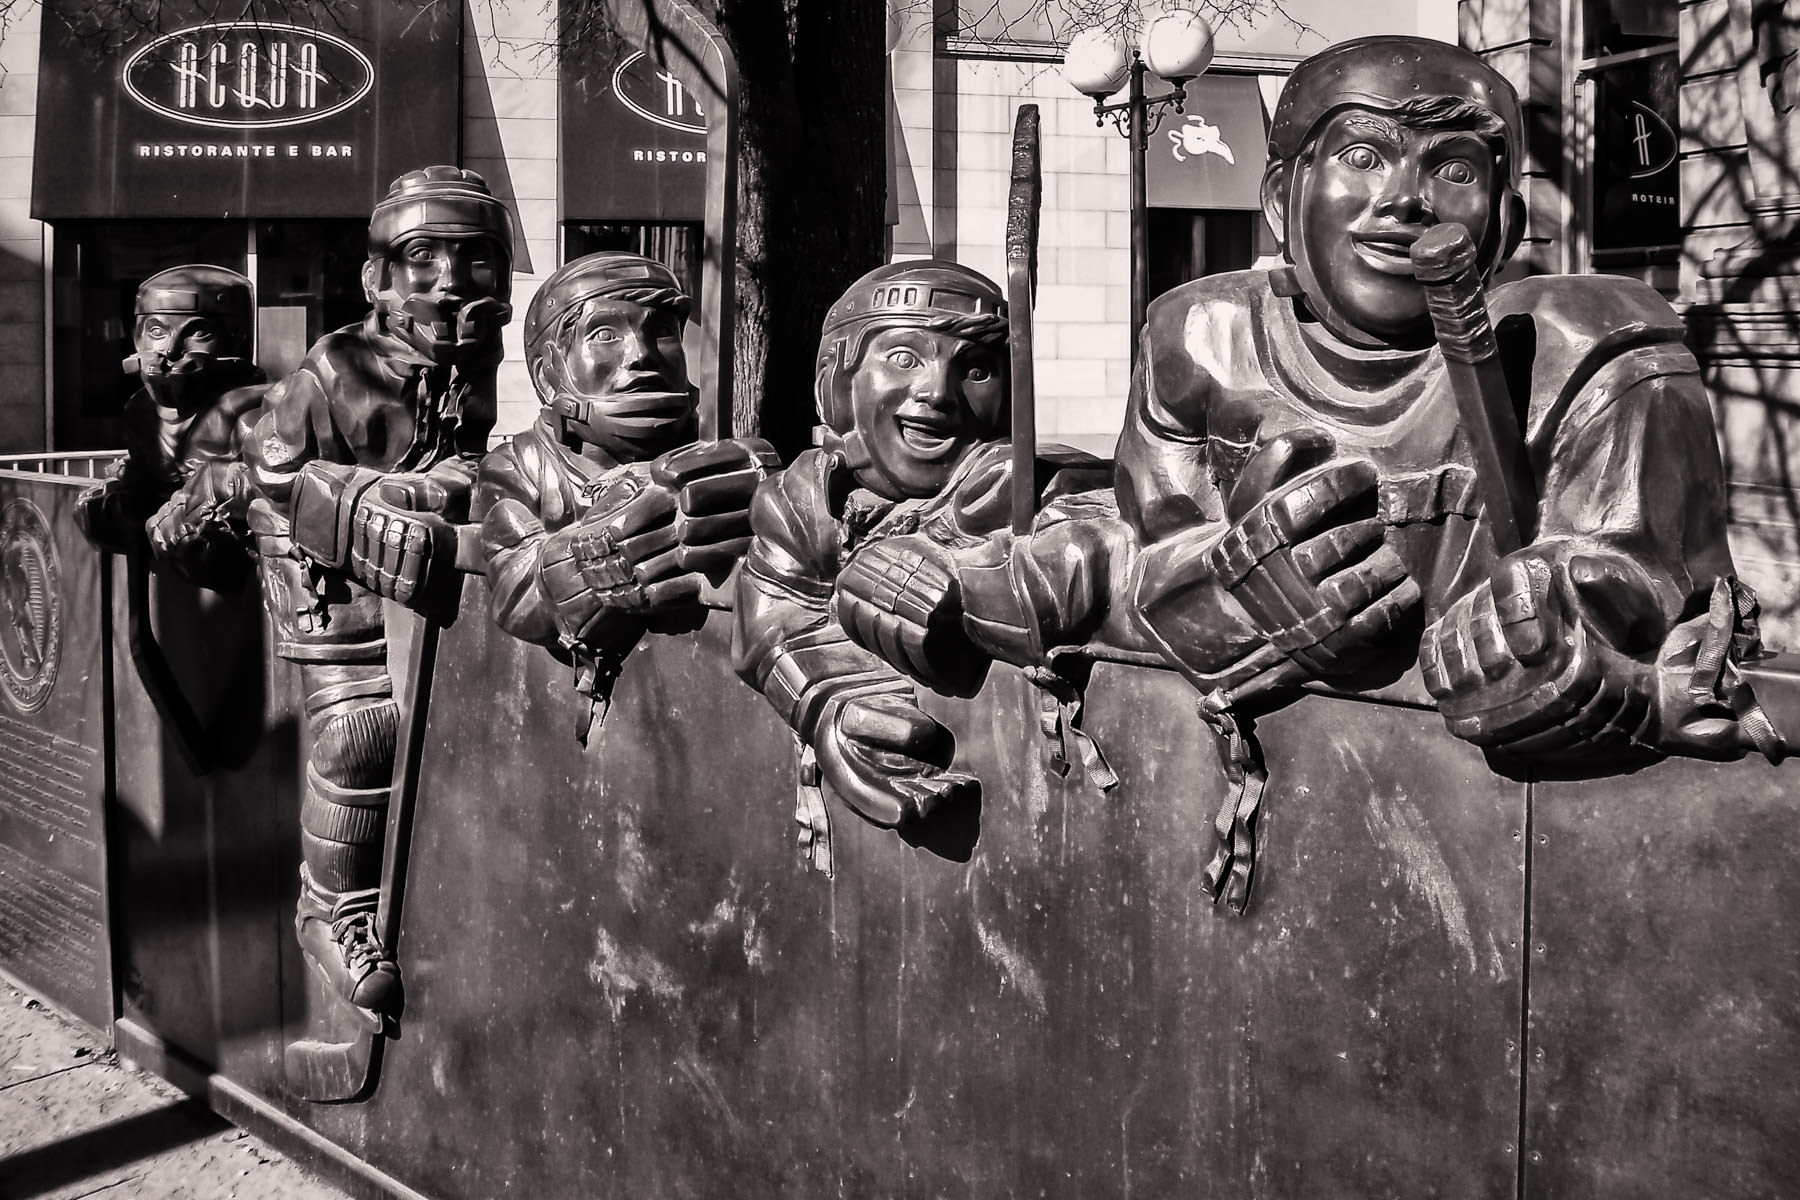 A bronze hockey sculpture outside of the Hockey Hall of Fame in Toronto.